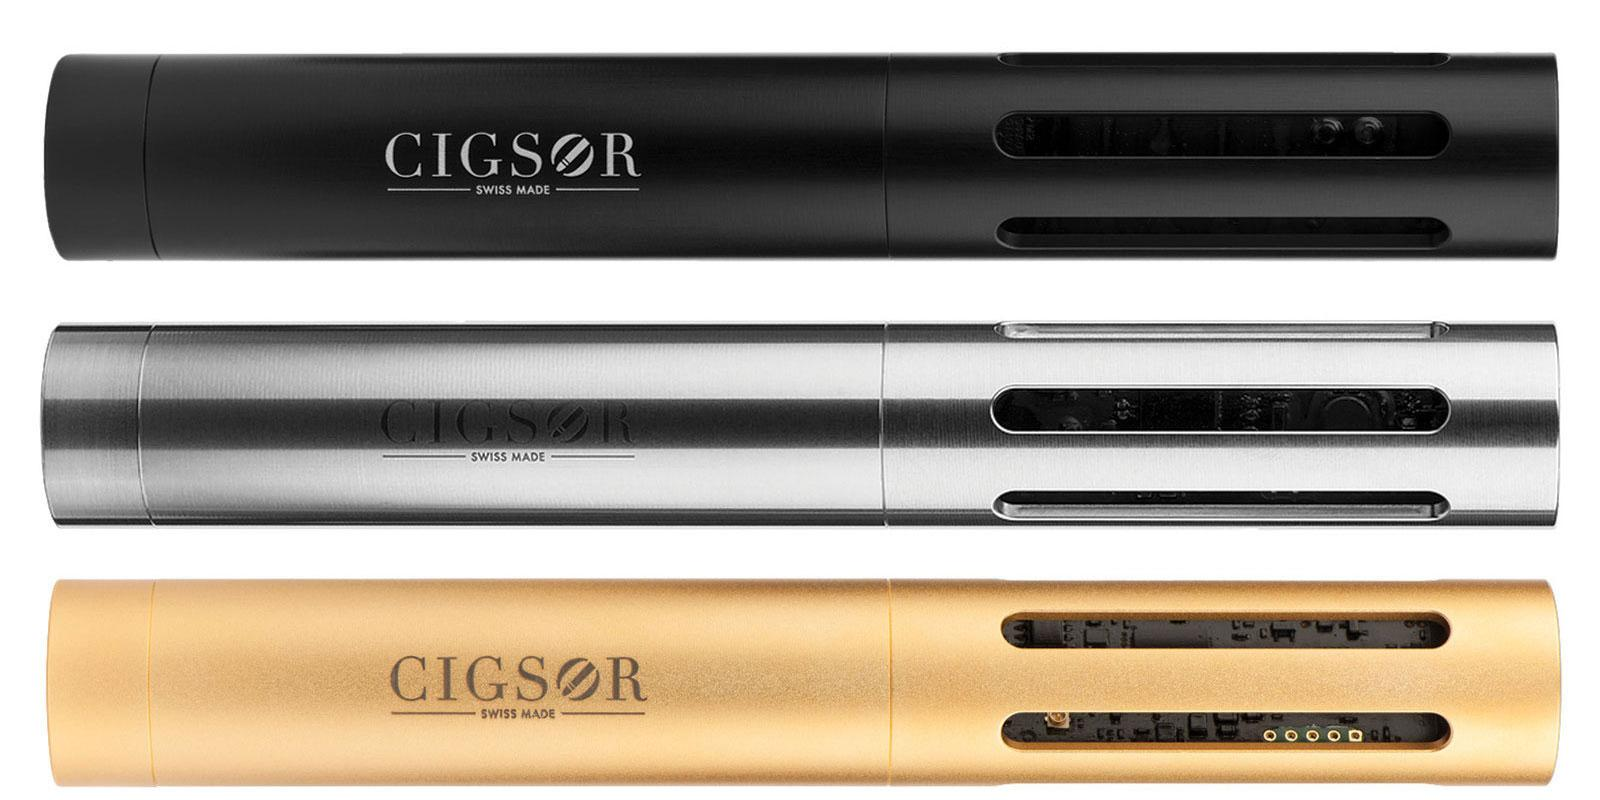 The Cigsor comes in three different designs, from top: Classic, made from anodised aluminum; Premium, made from stainless steel; and Luxury, which is plated in 18 karat gold.